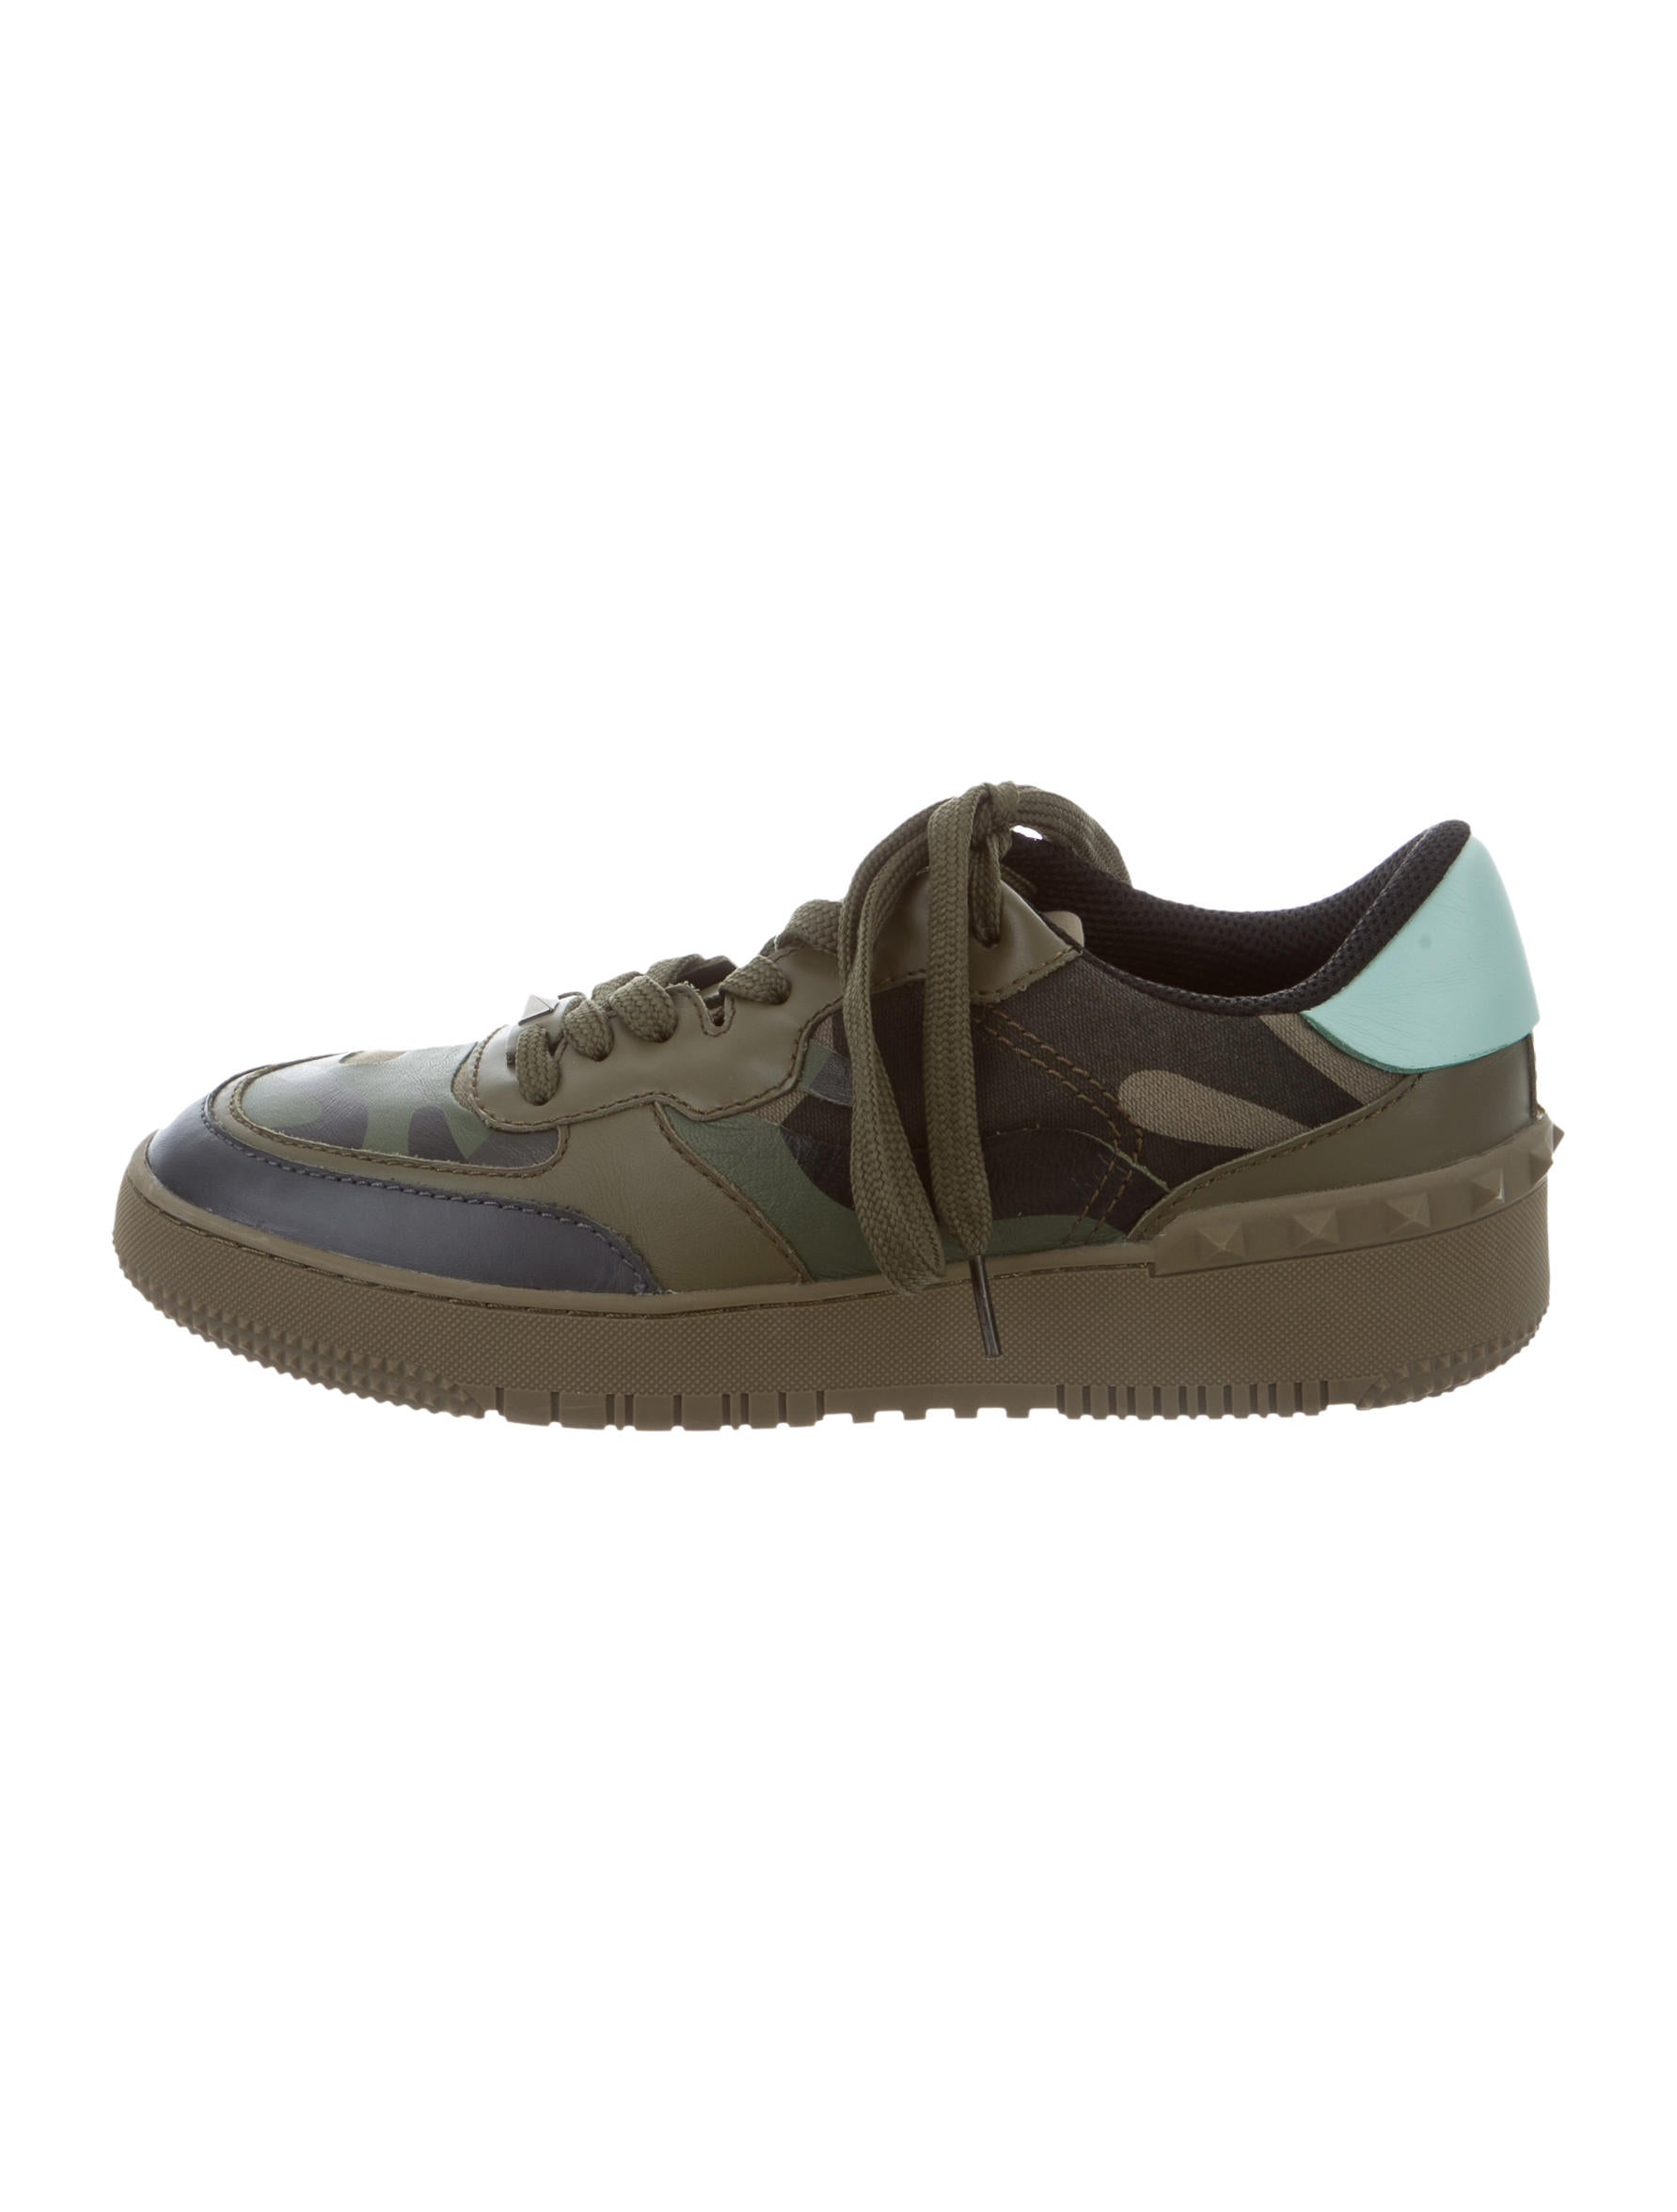 Valentino Camouflage Rockstud Sneakers Shoes Val60457